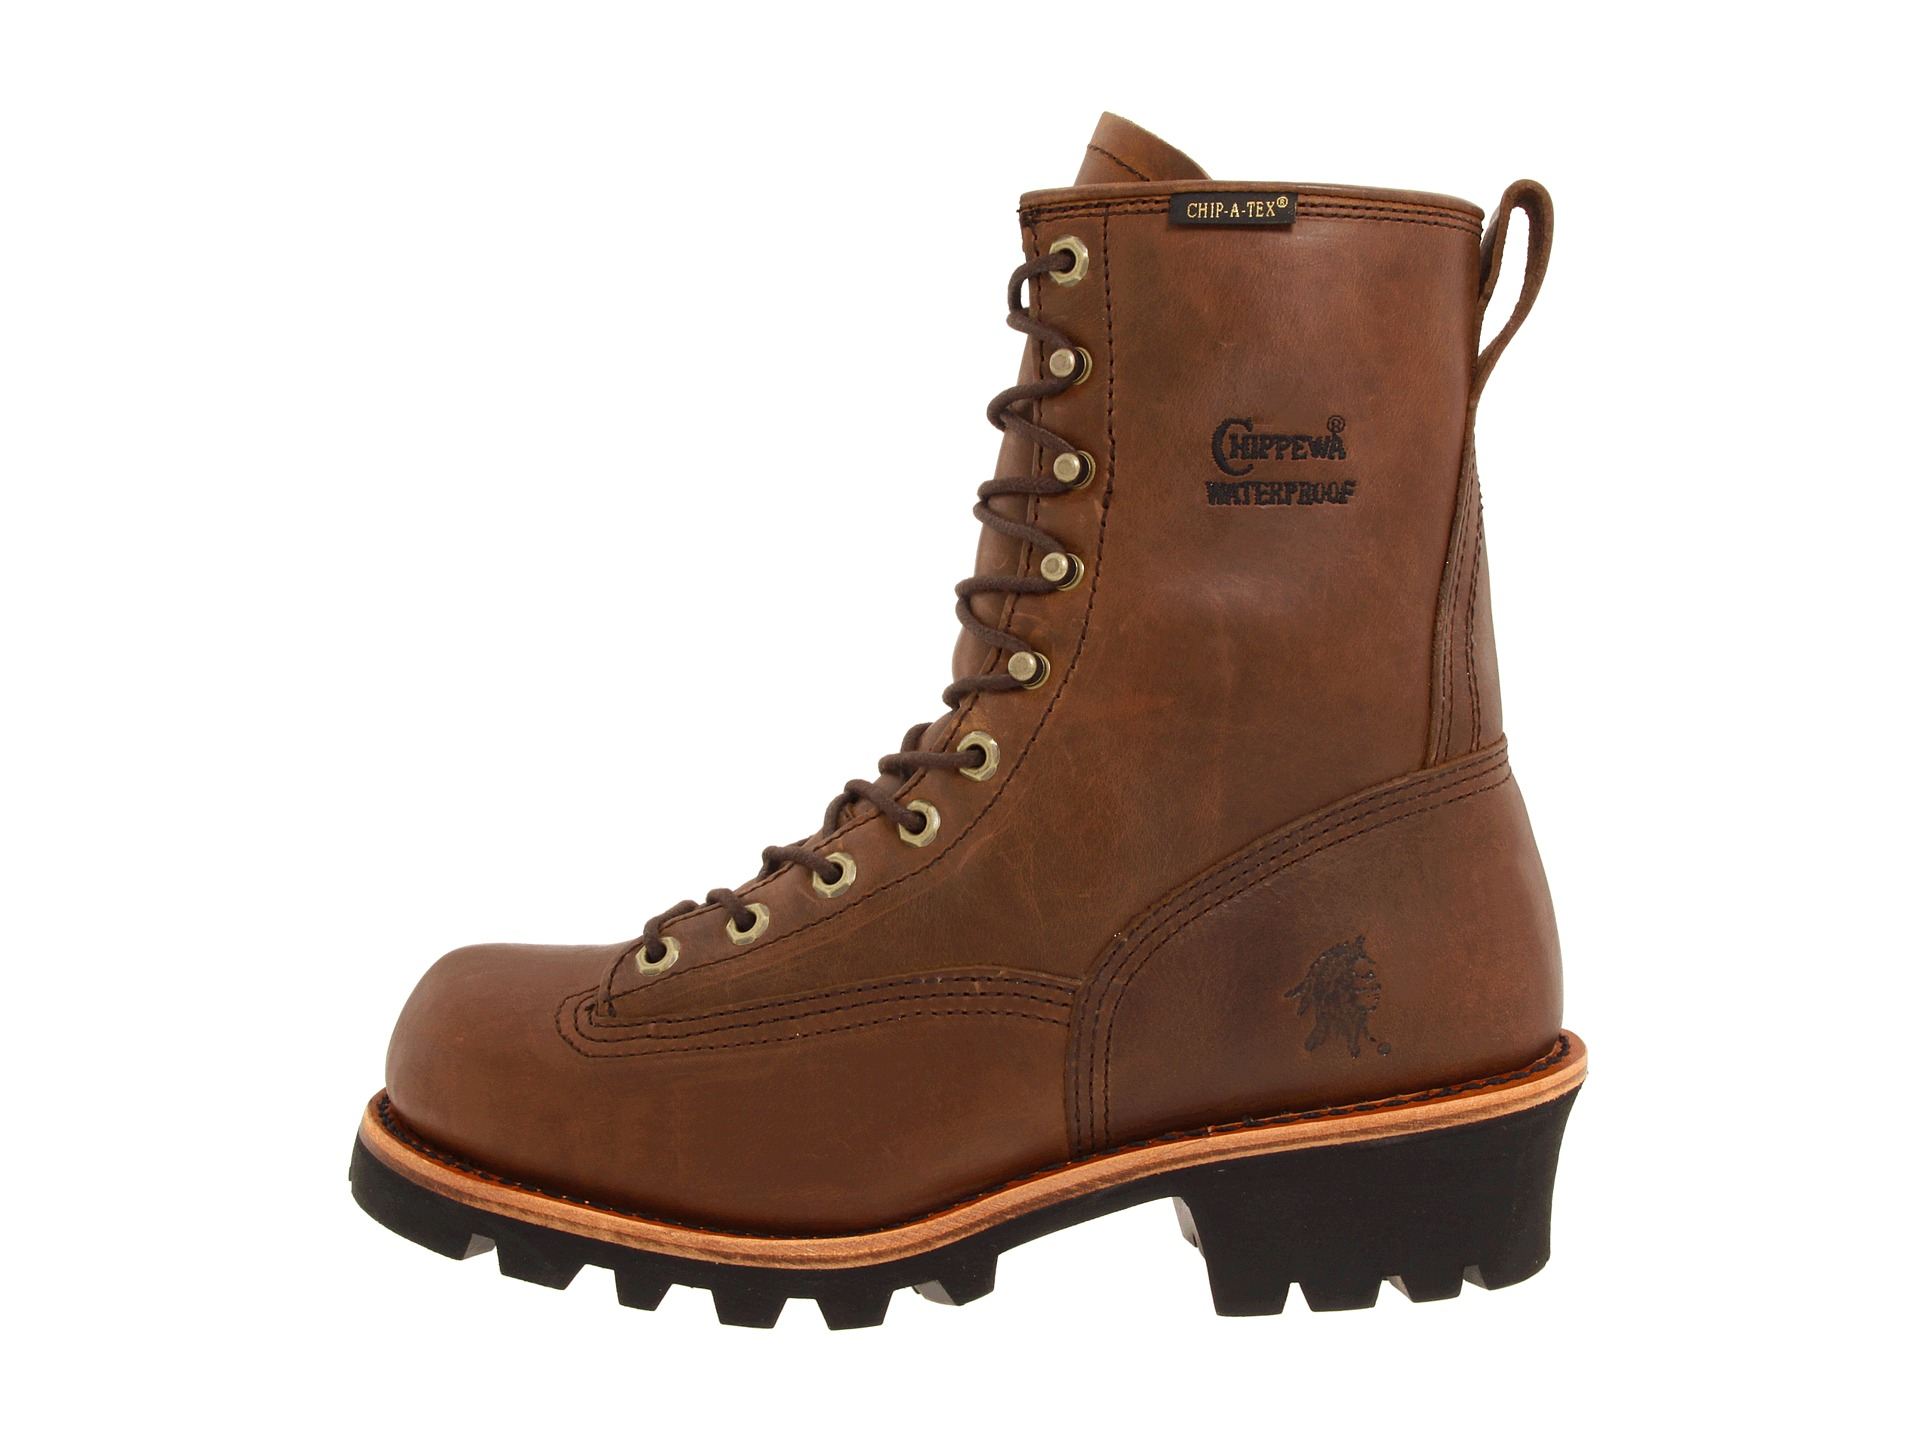 Danner Lace To Toe Boots - Yu Boots